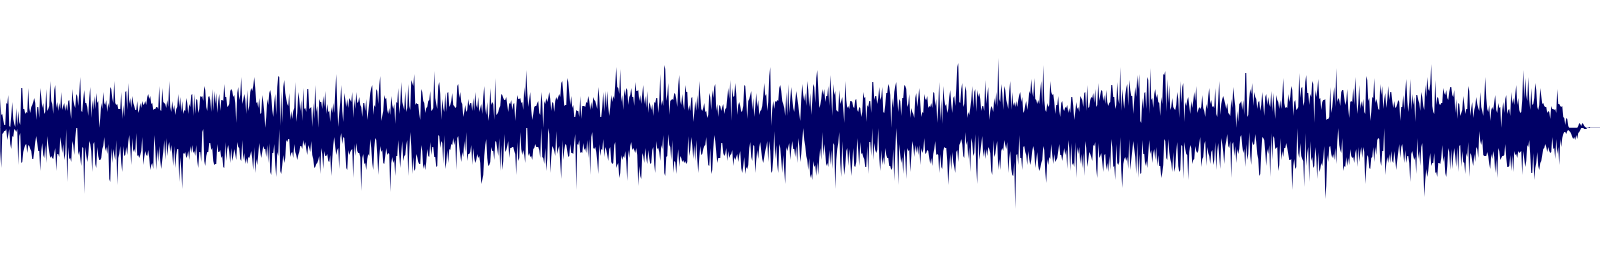 waveform of track #91845